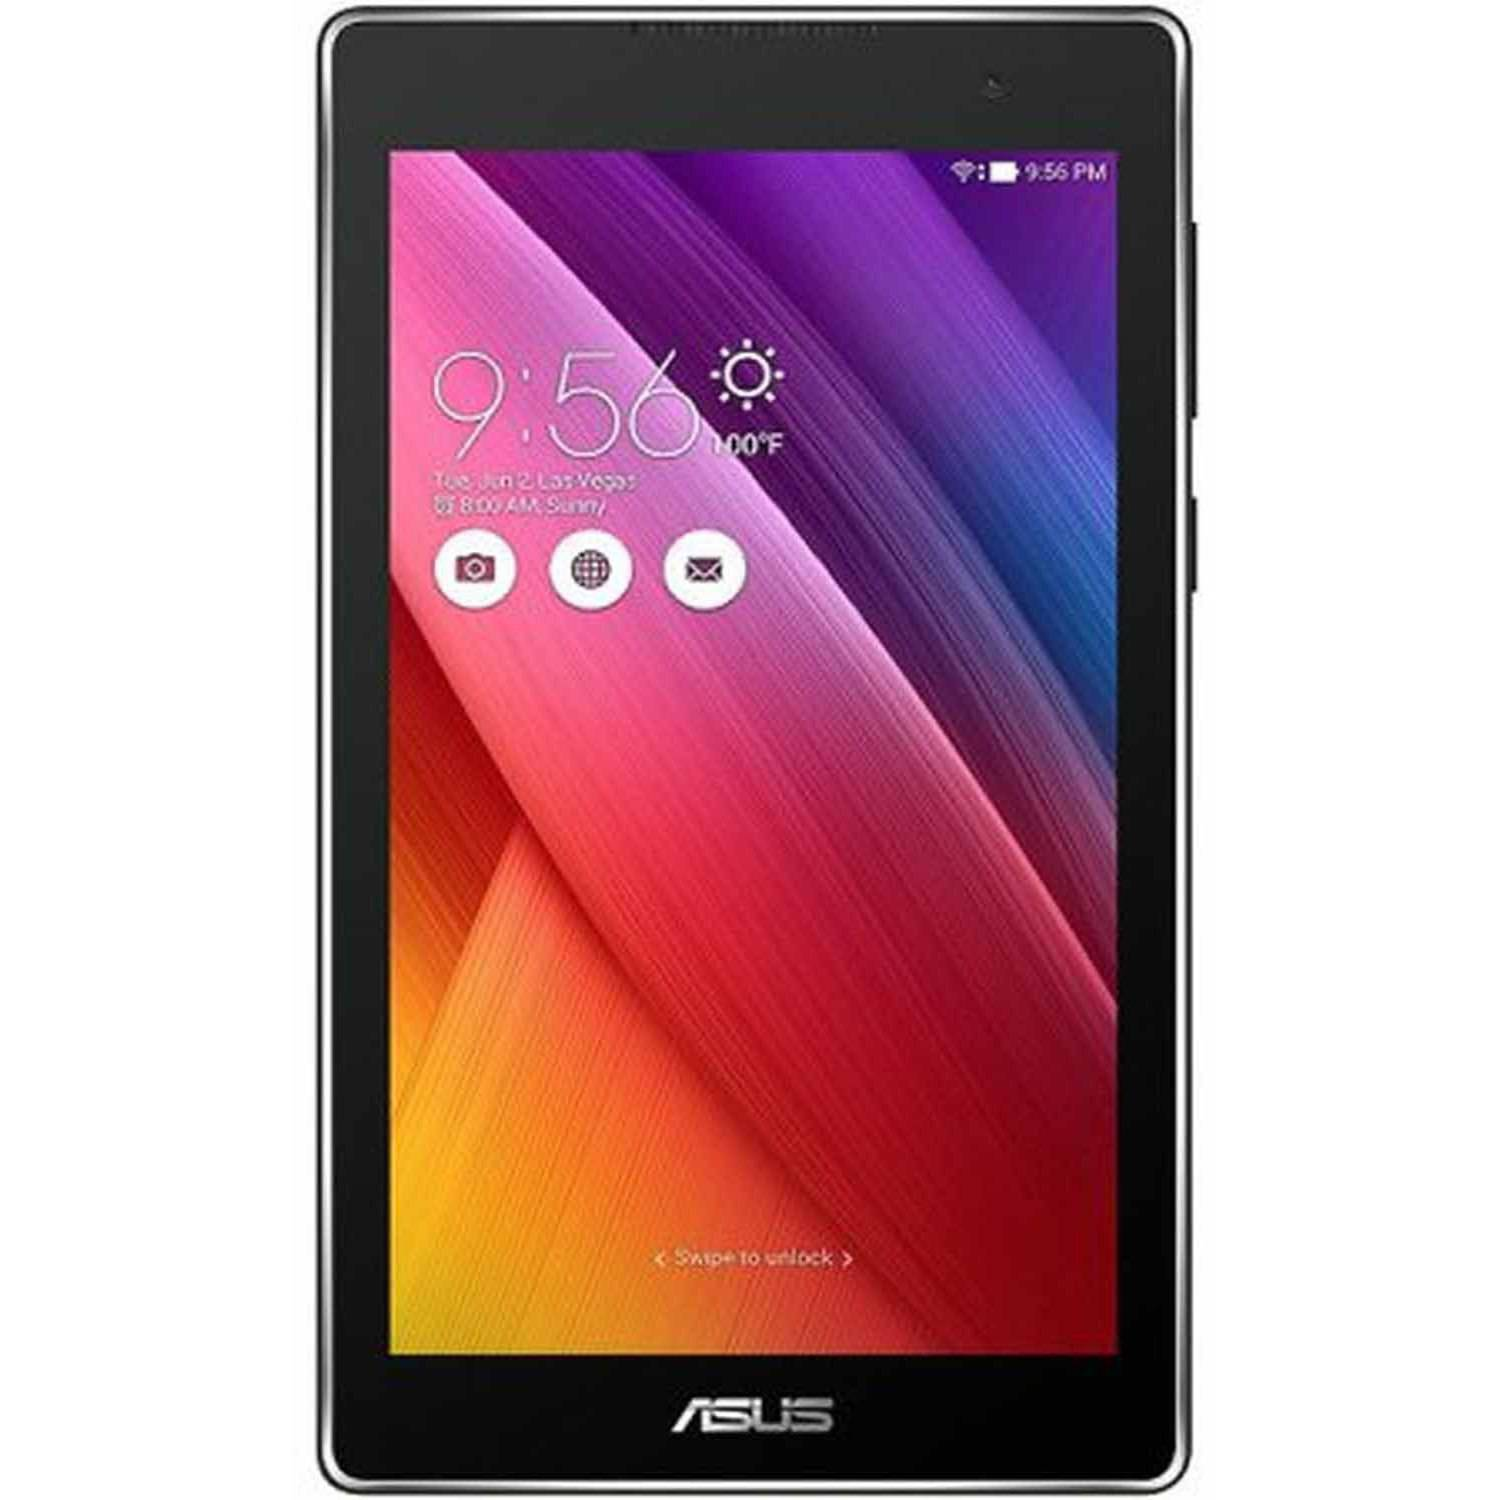 "ASUS Z170CA1BK 7"" Tablet 16GB with WiFi Intel Atom X3-C3200rk Quad-Core Processor Featuring Android (5.1) Lollipop by ASUS"